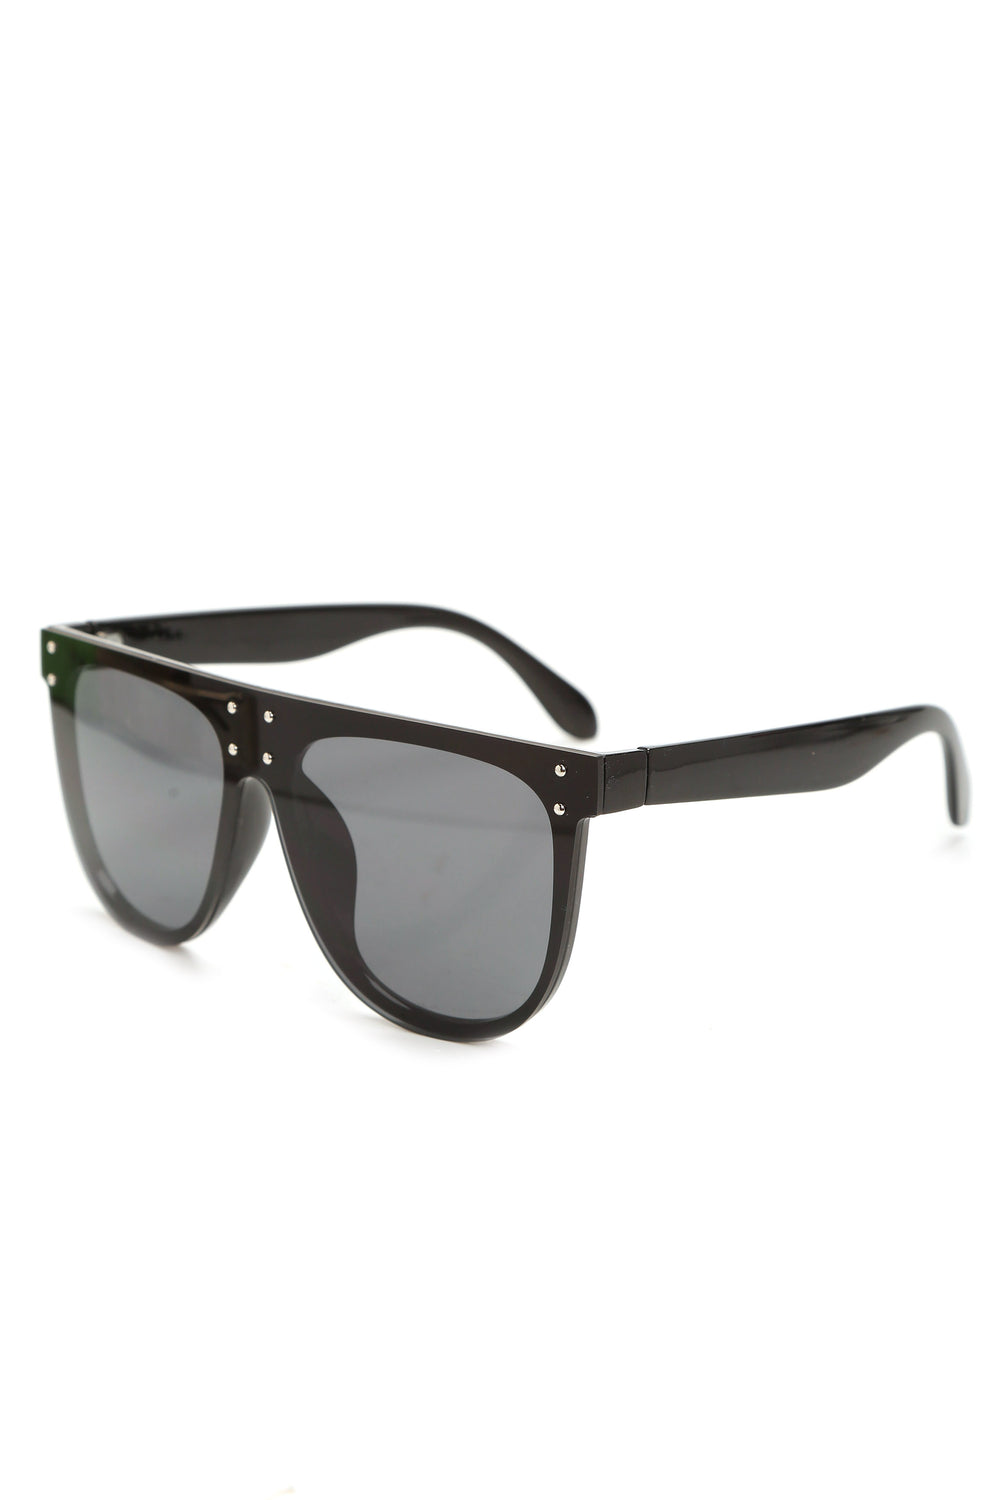 Armour Shield Sunglasses - Black/Smoke